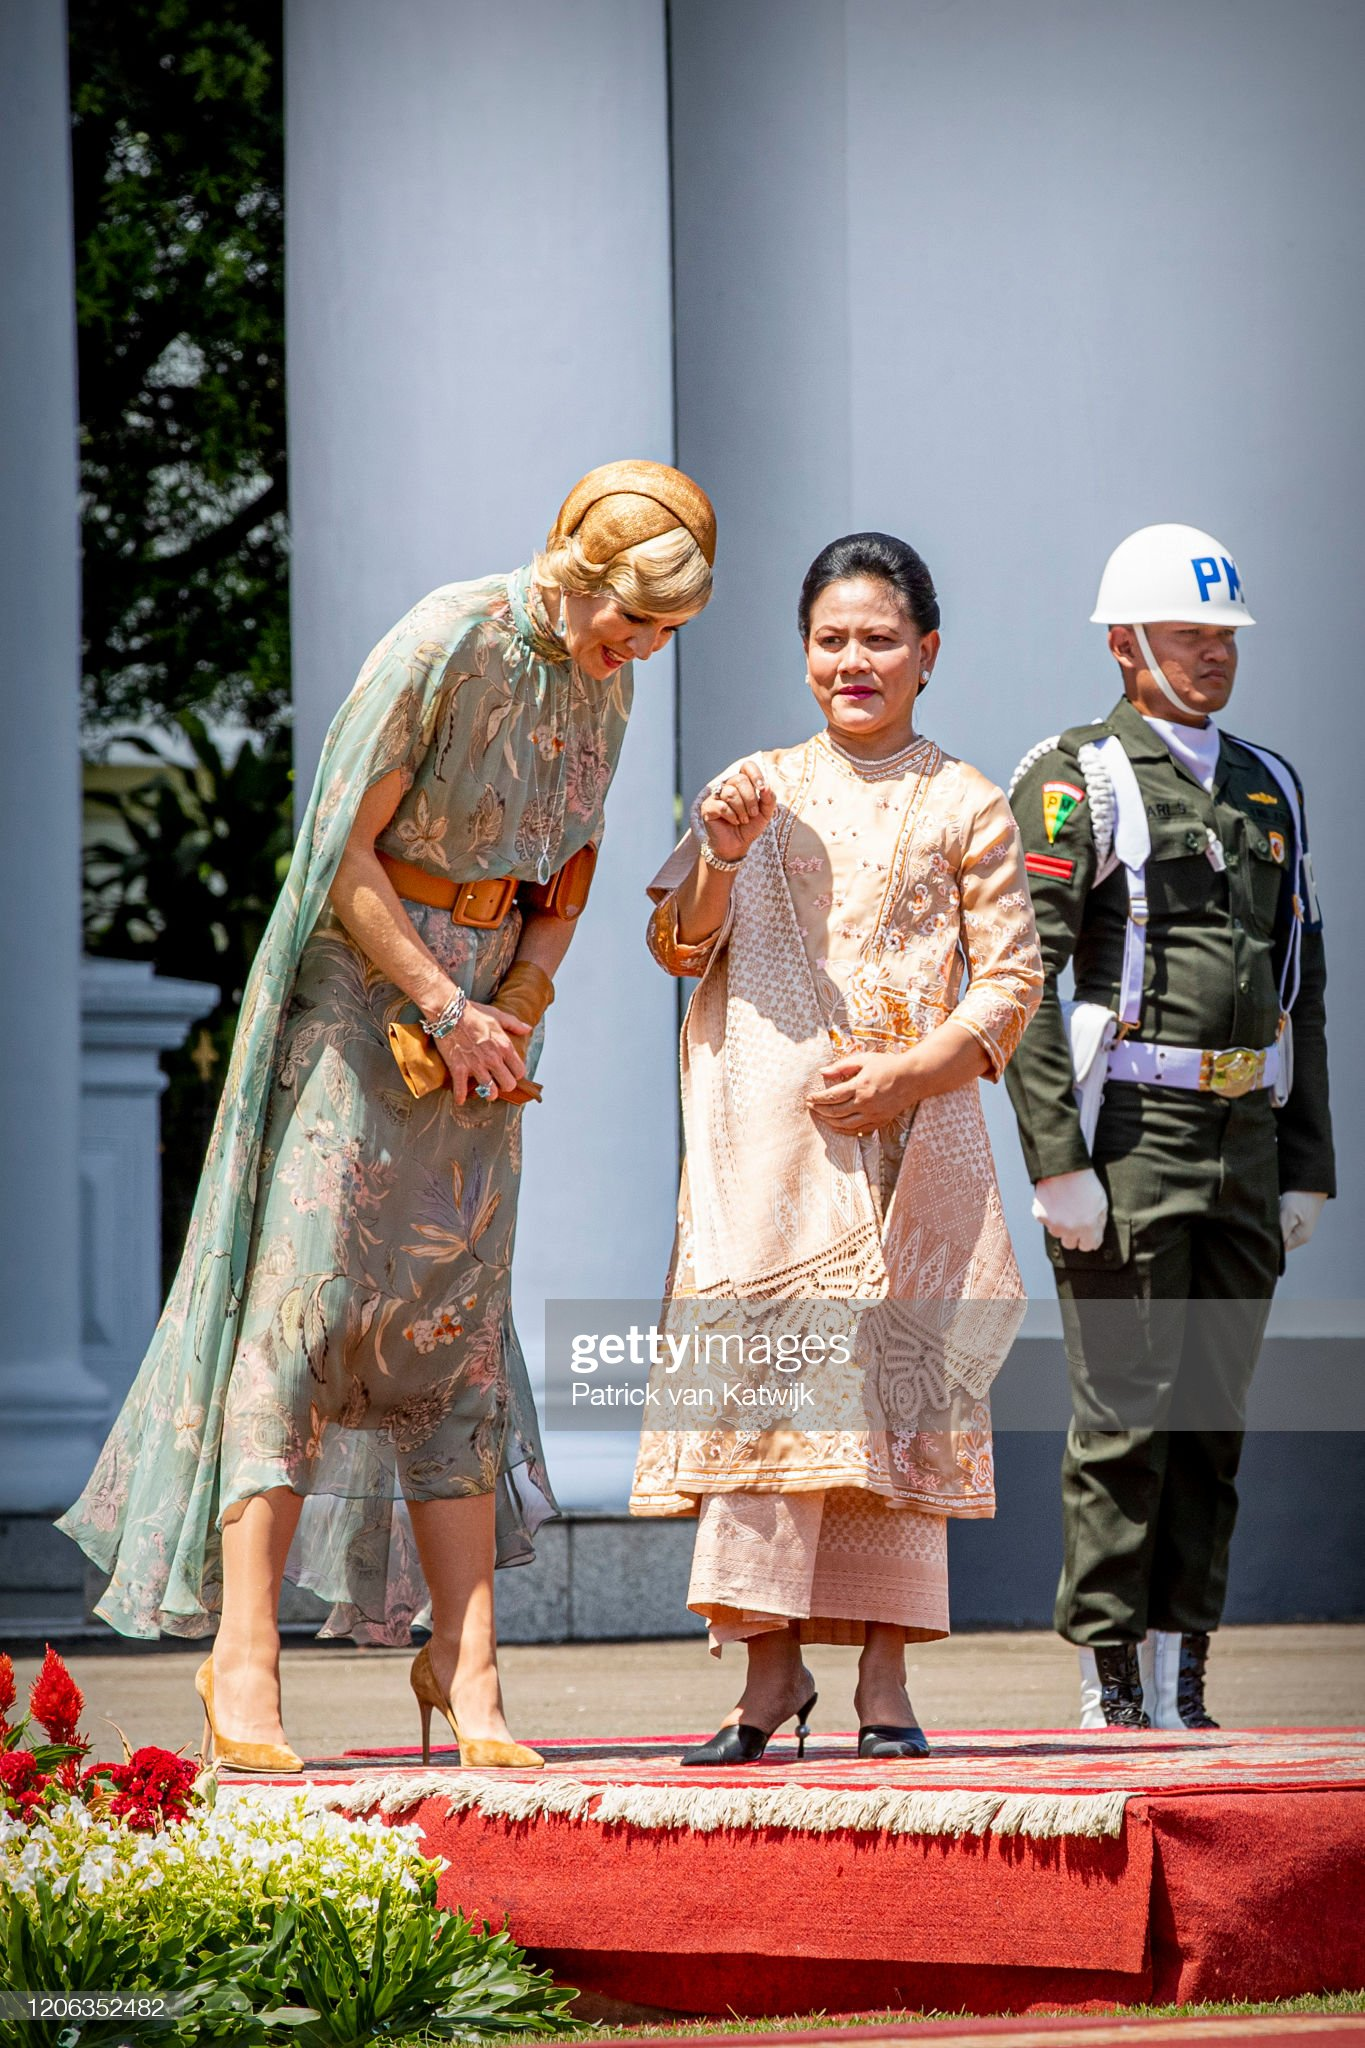 https://media.gettyimages.com/photos/queen-maxima-of-the-netherlands-is-welcomed-by-president-jcand-his-picture-id1206352482?s=2048x2048